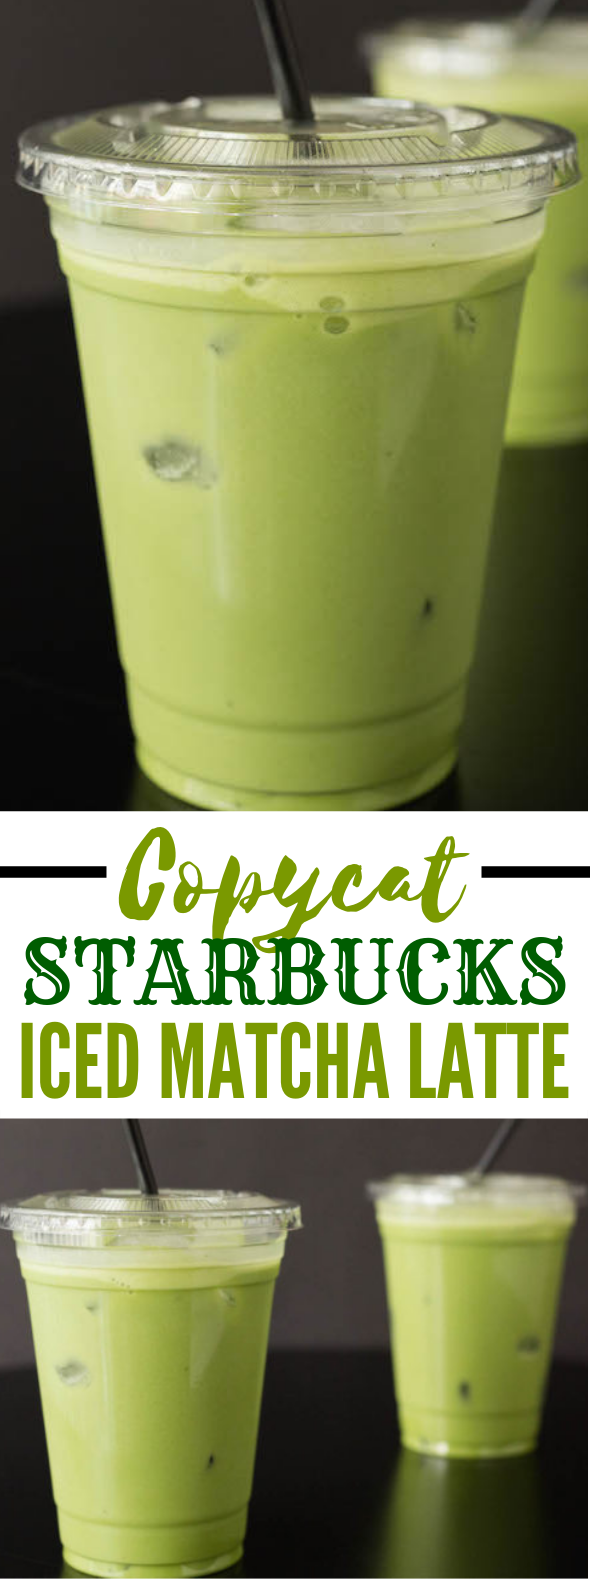 Copycat Starbucks Iced Matcha Latte Recipe #drinks #nonalcoholic